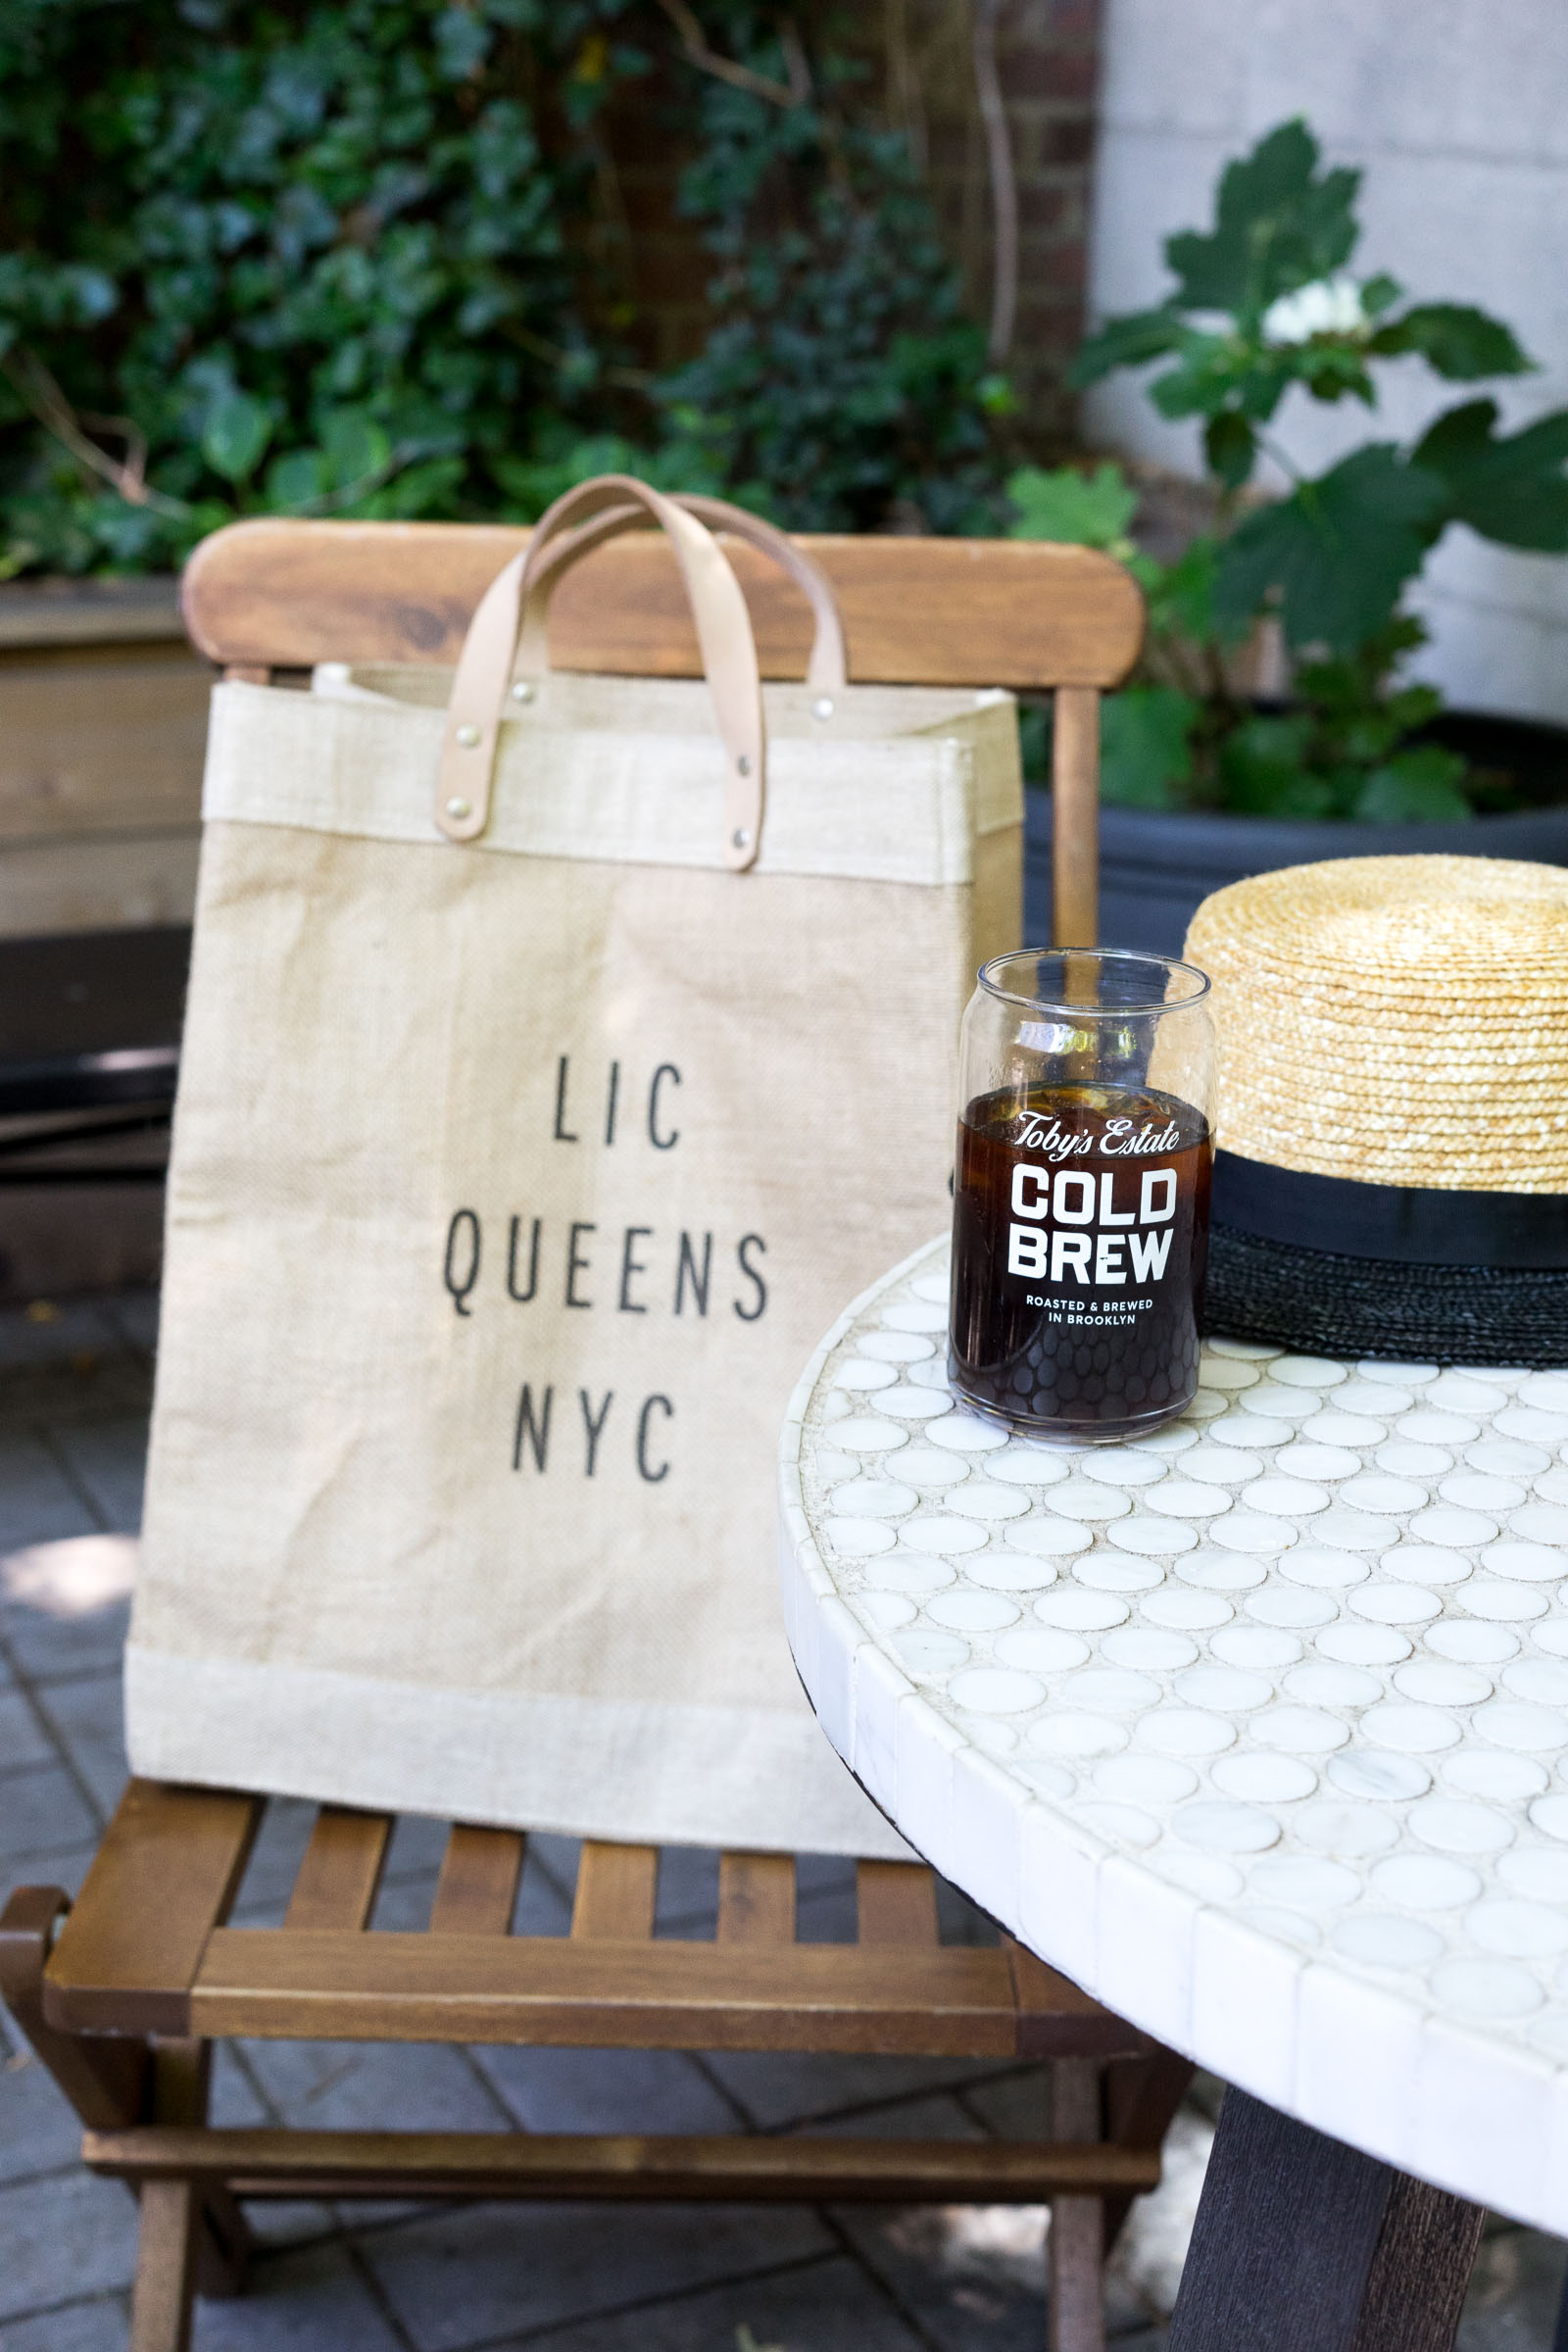 LIC-Market-bag-things-to-do-in-LIC-Queens-NYC_-47.jpg